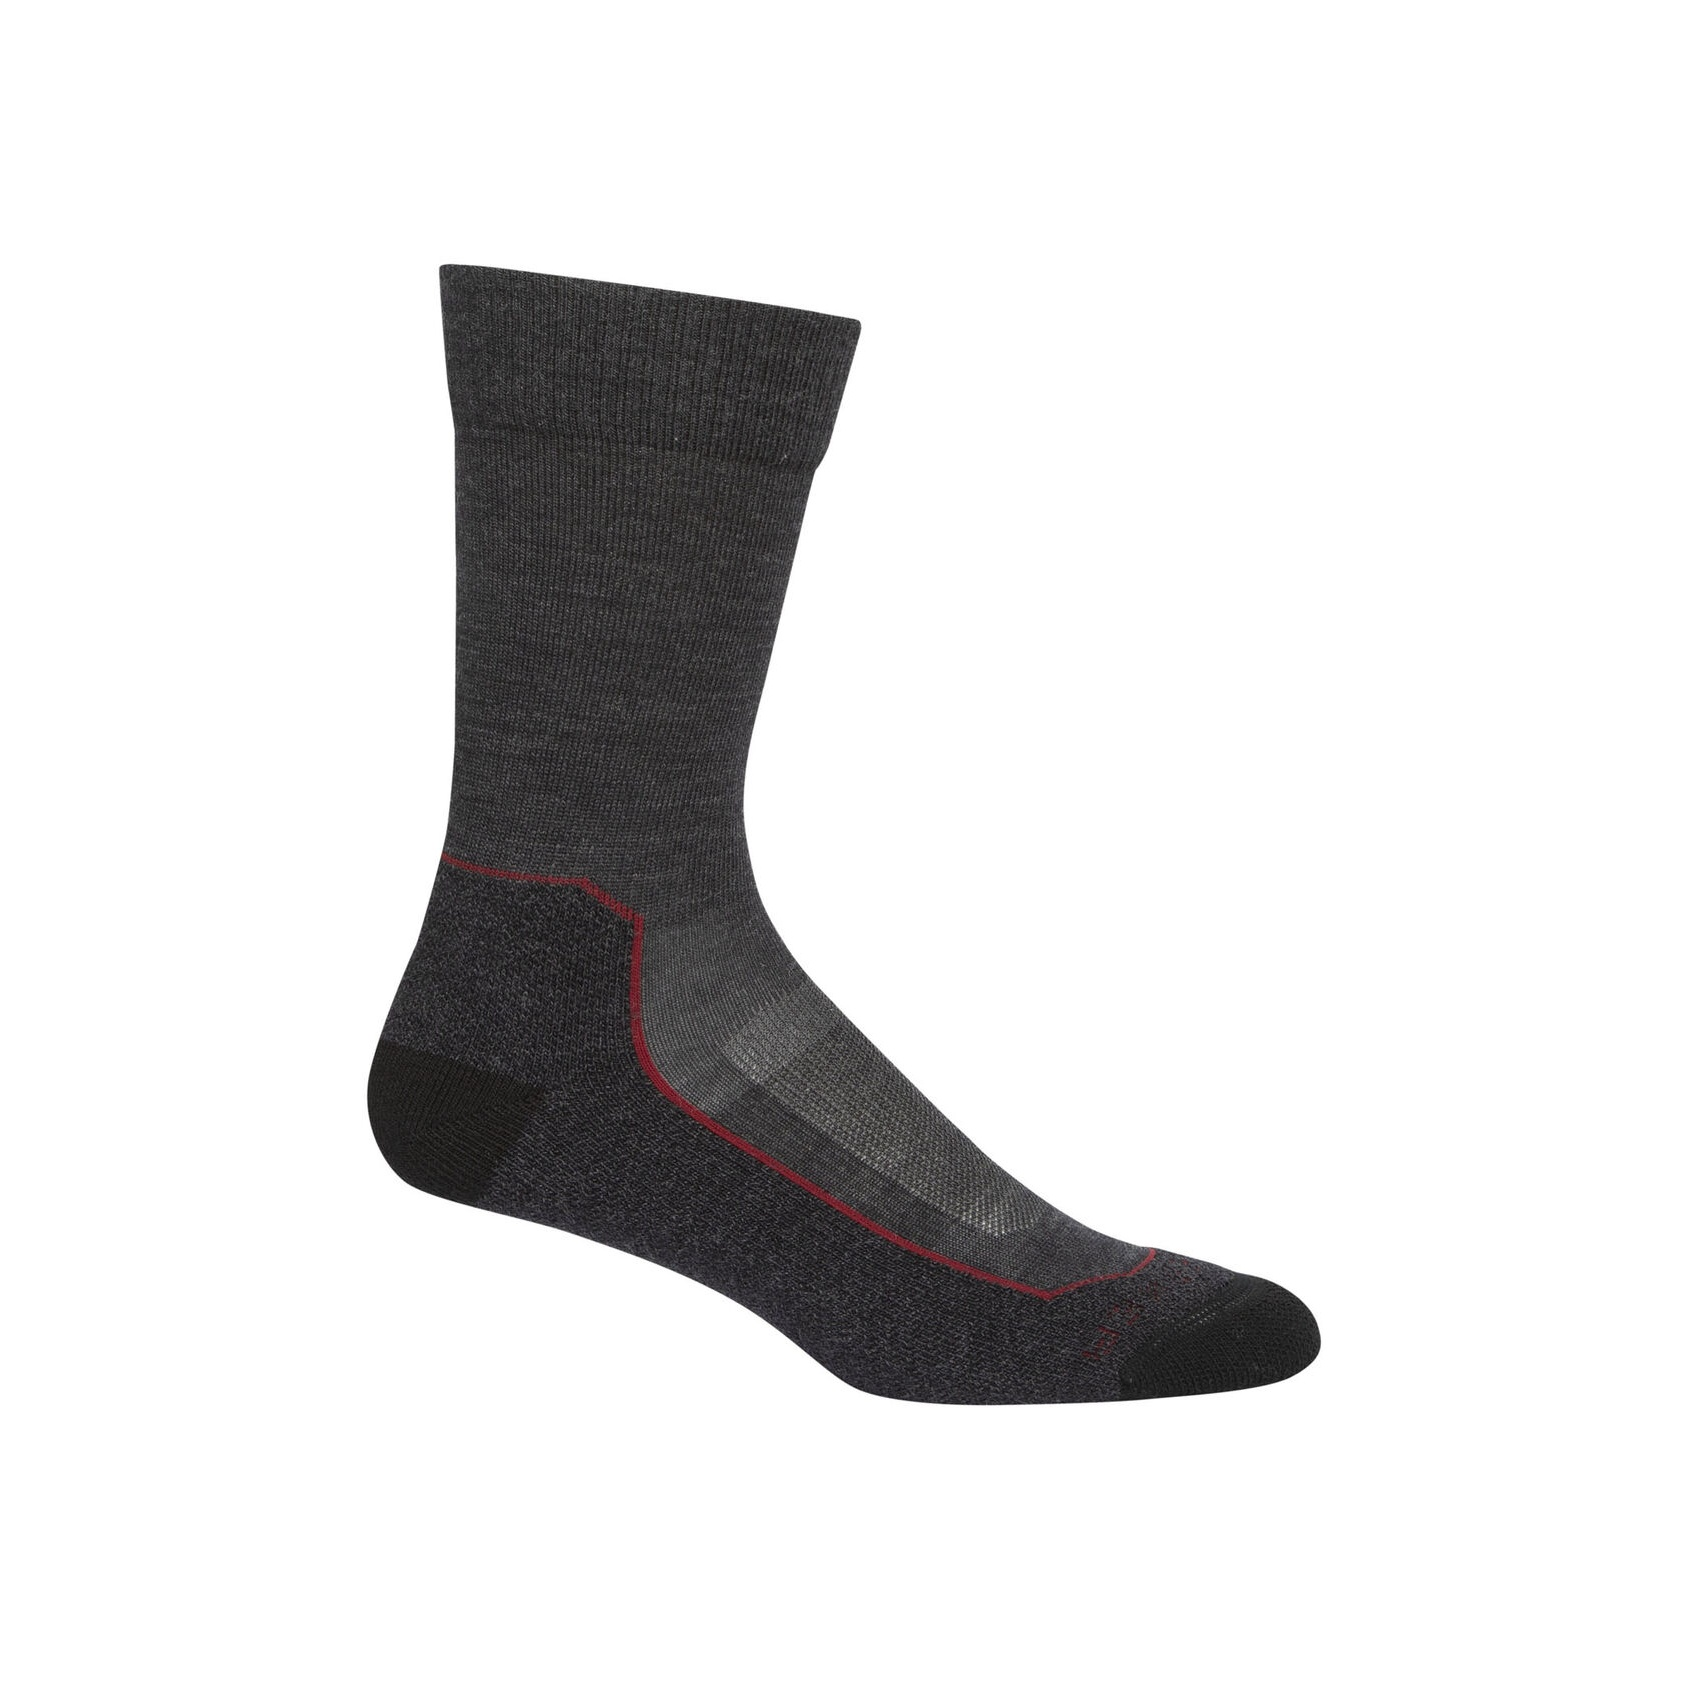 Hike+ Light Crew Sock - Men's